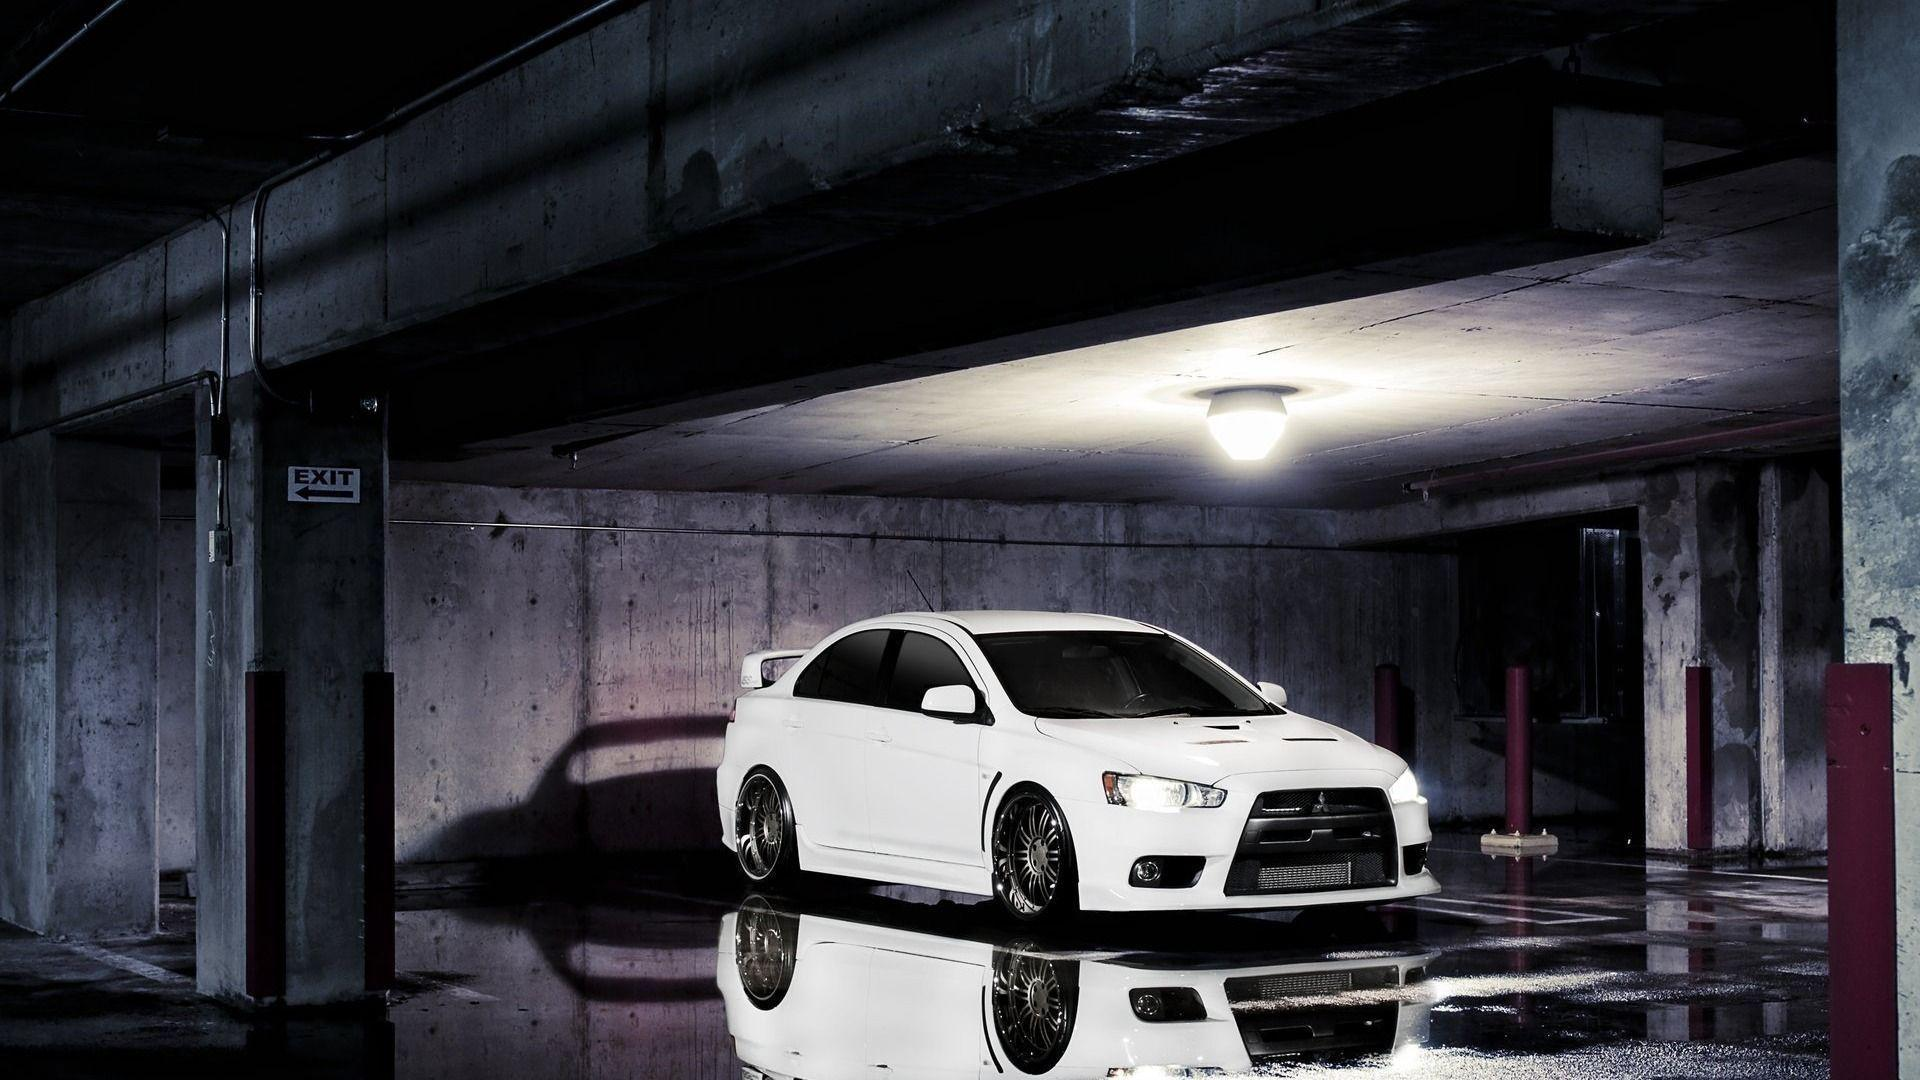 Evo 10 Wallpaper Mitsubishi Lancer Evolution X Wallpapers Wallpaper Cave